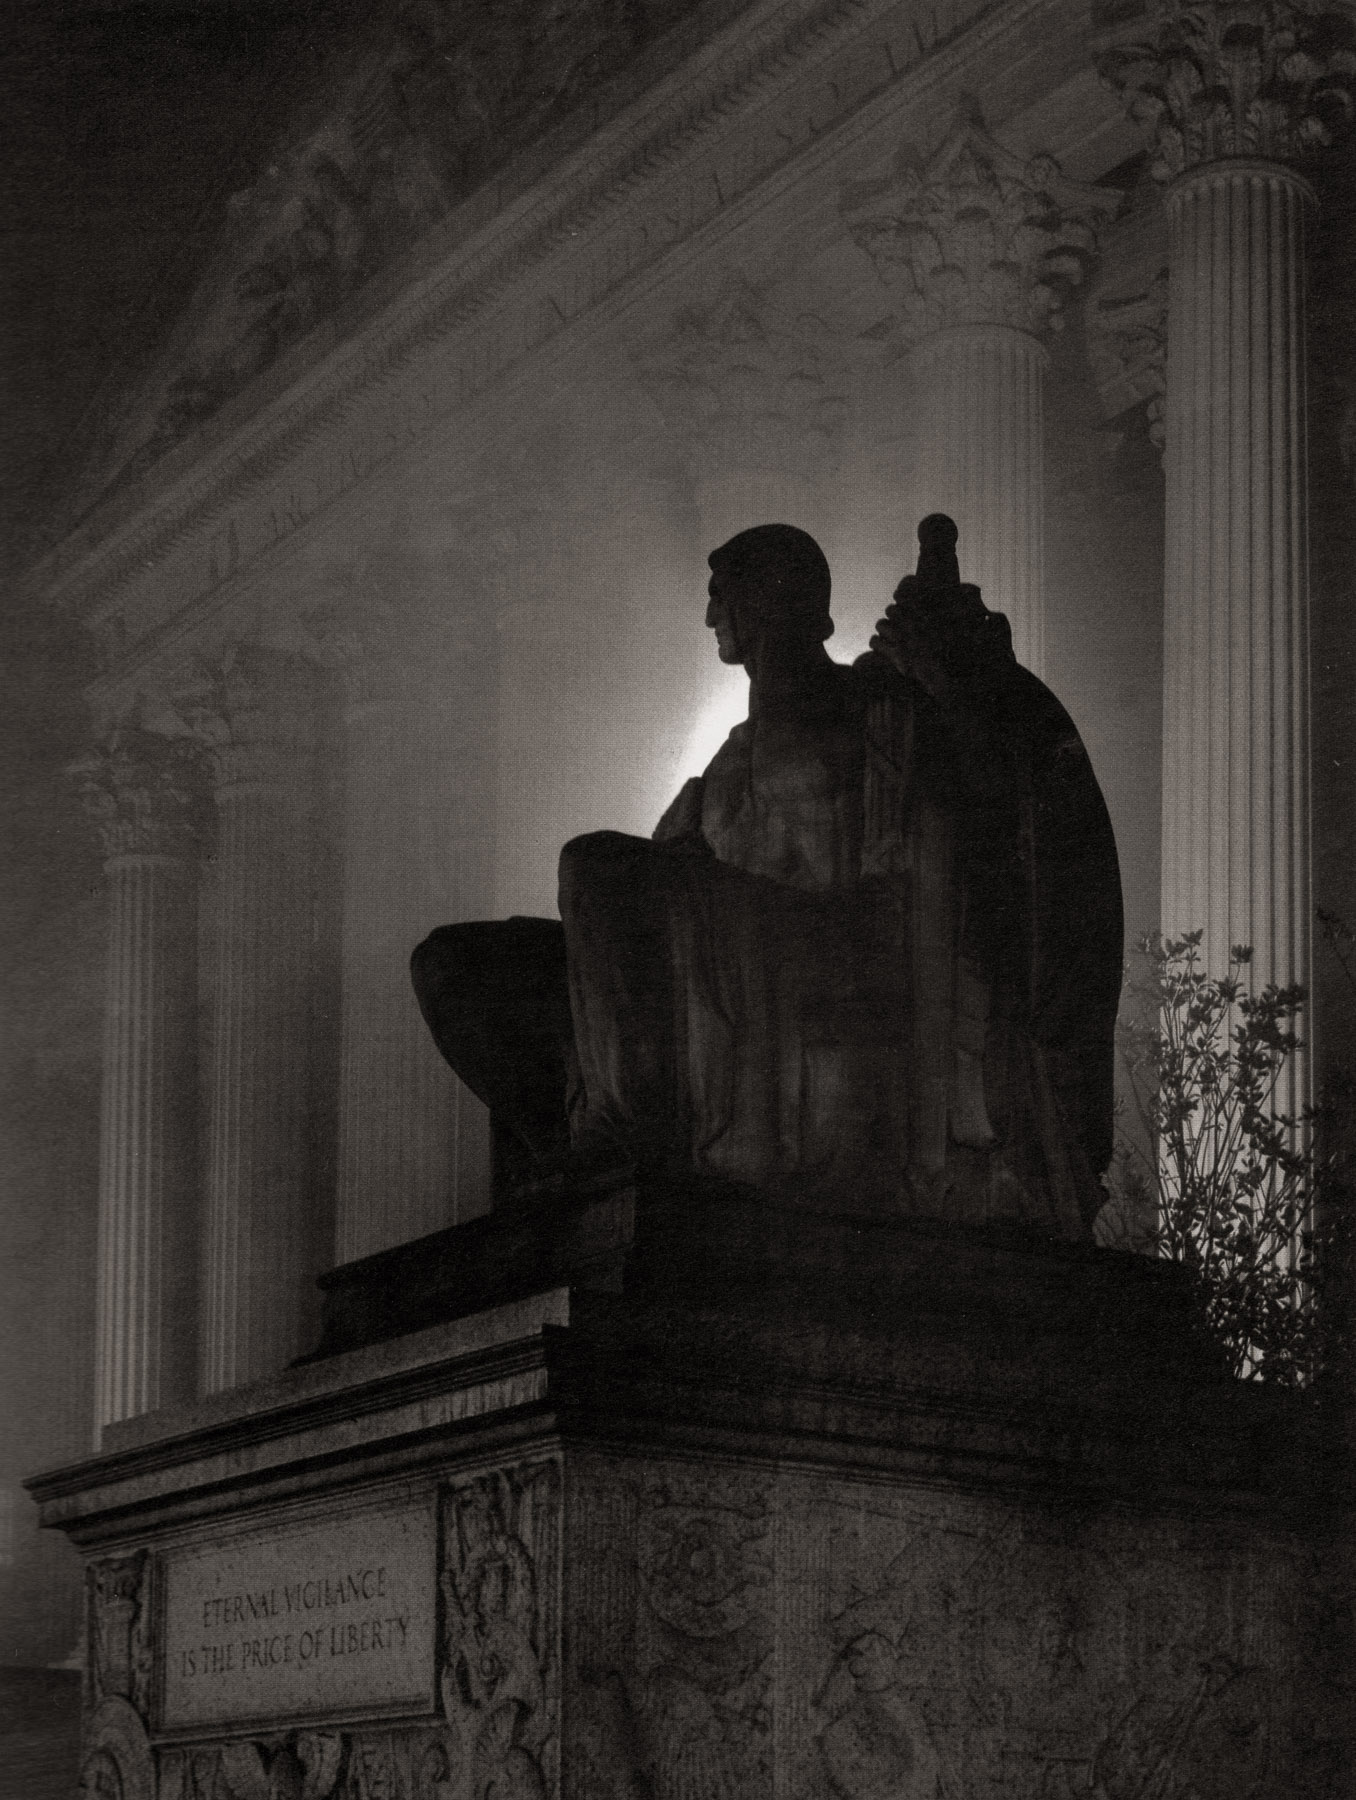 """National Archives II."" A dramatic image of the sculpture ""Guardianship"" by James Earle Fraser, best-known as the designer of the buffalo nickel. Fraser's sculpture graces many of the buildings constructed during the New Deal era. Beneath the sculpture is a quote by Thomas Jefferson: ""Eternal vigilance is the price of liberty."" Careful placement of a light source behind the sculpture adds to the drama."